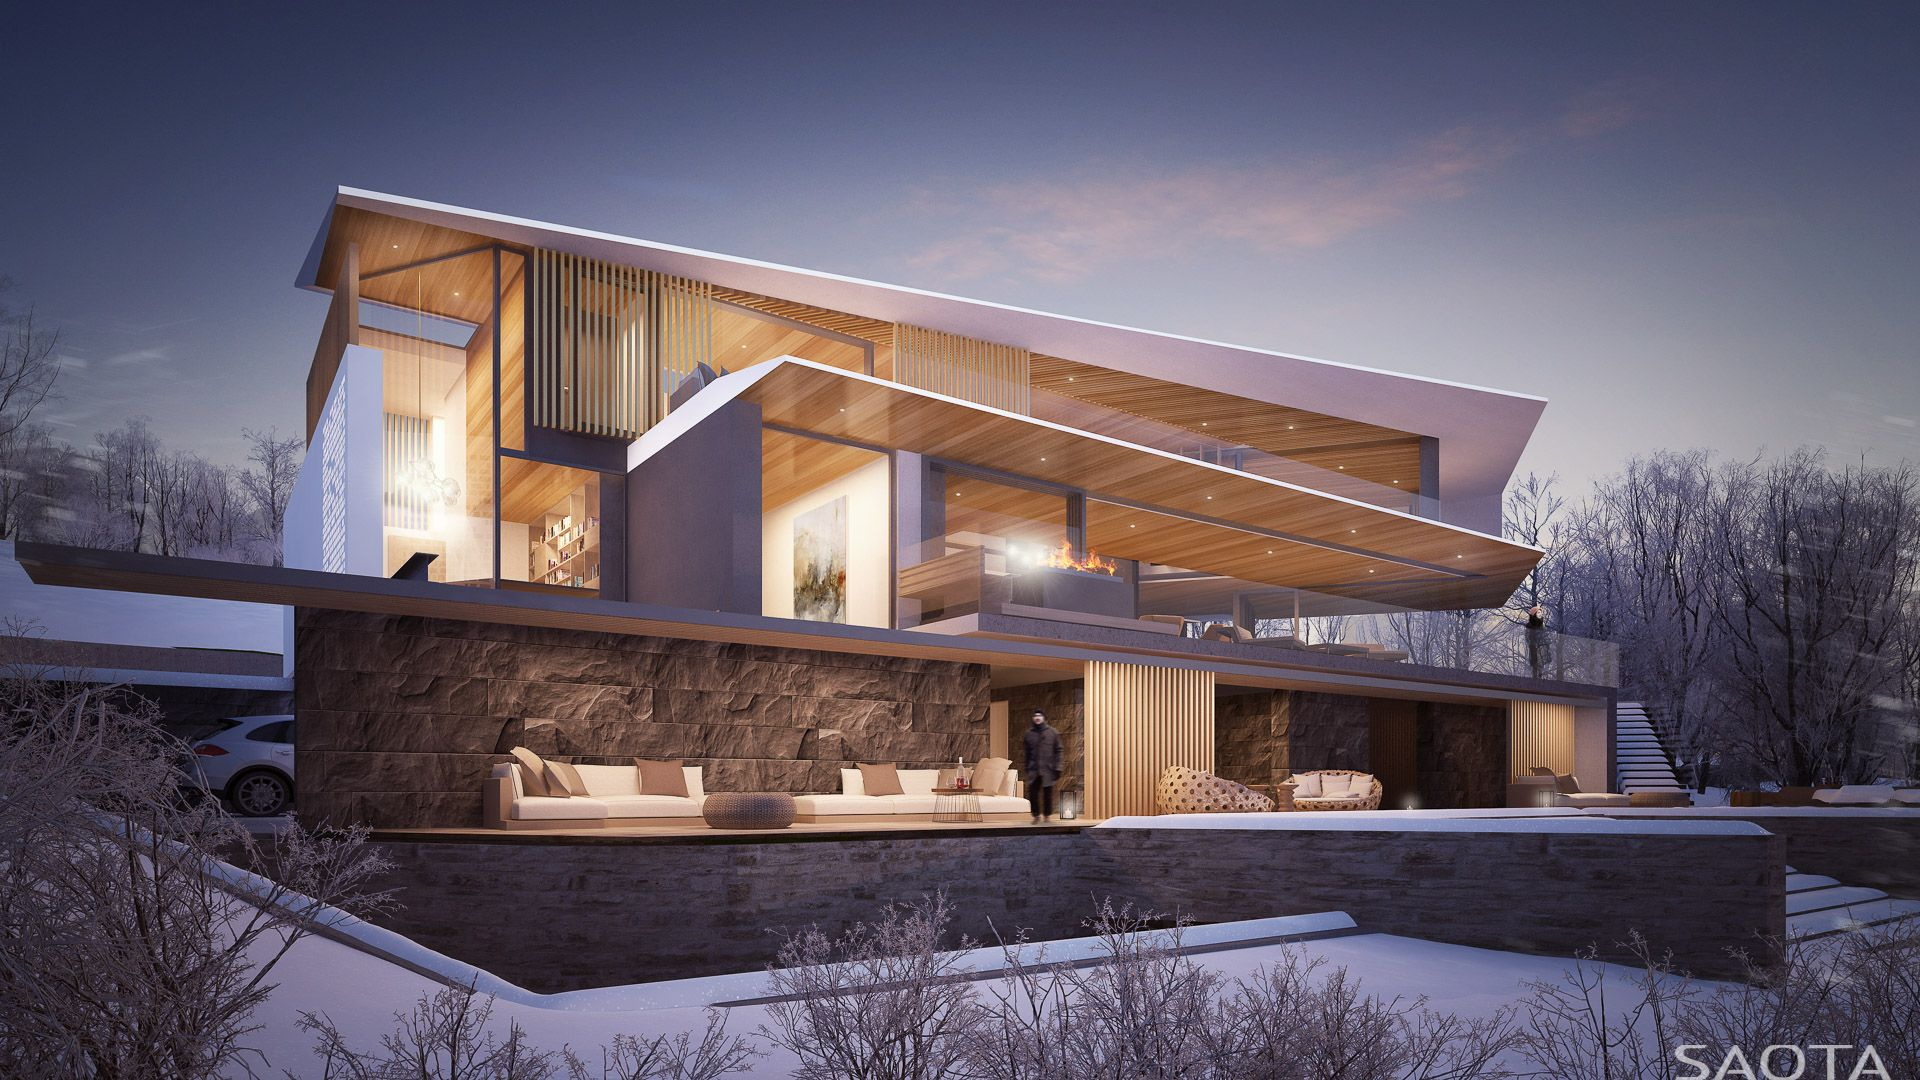 Ch lakeview nestled between lake zurich and the alps this site enjoys both panoramic lake and snow capped mountain views